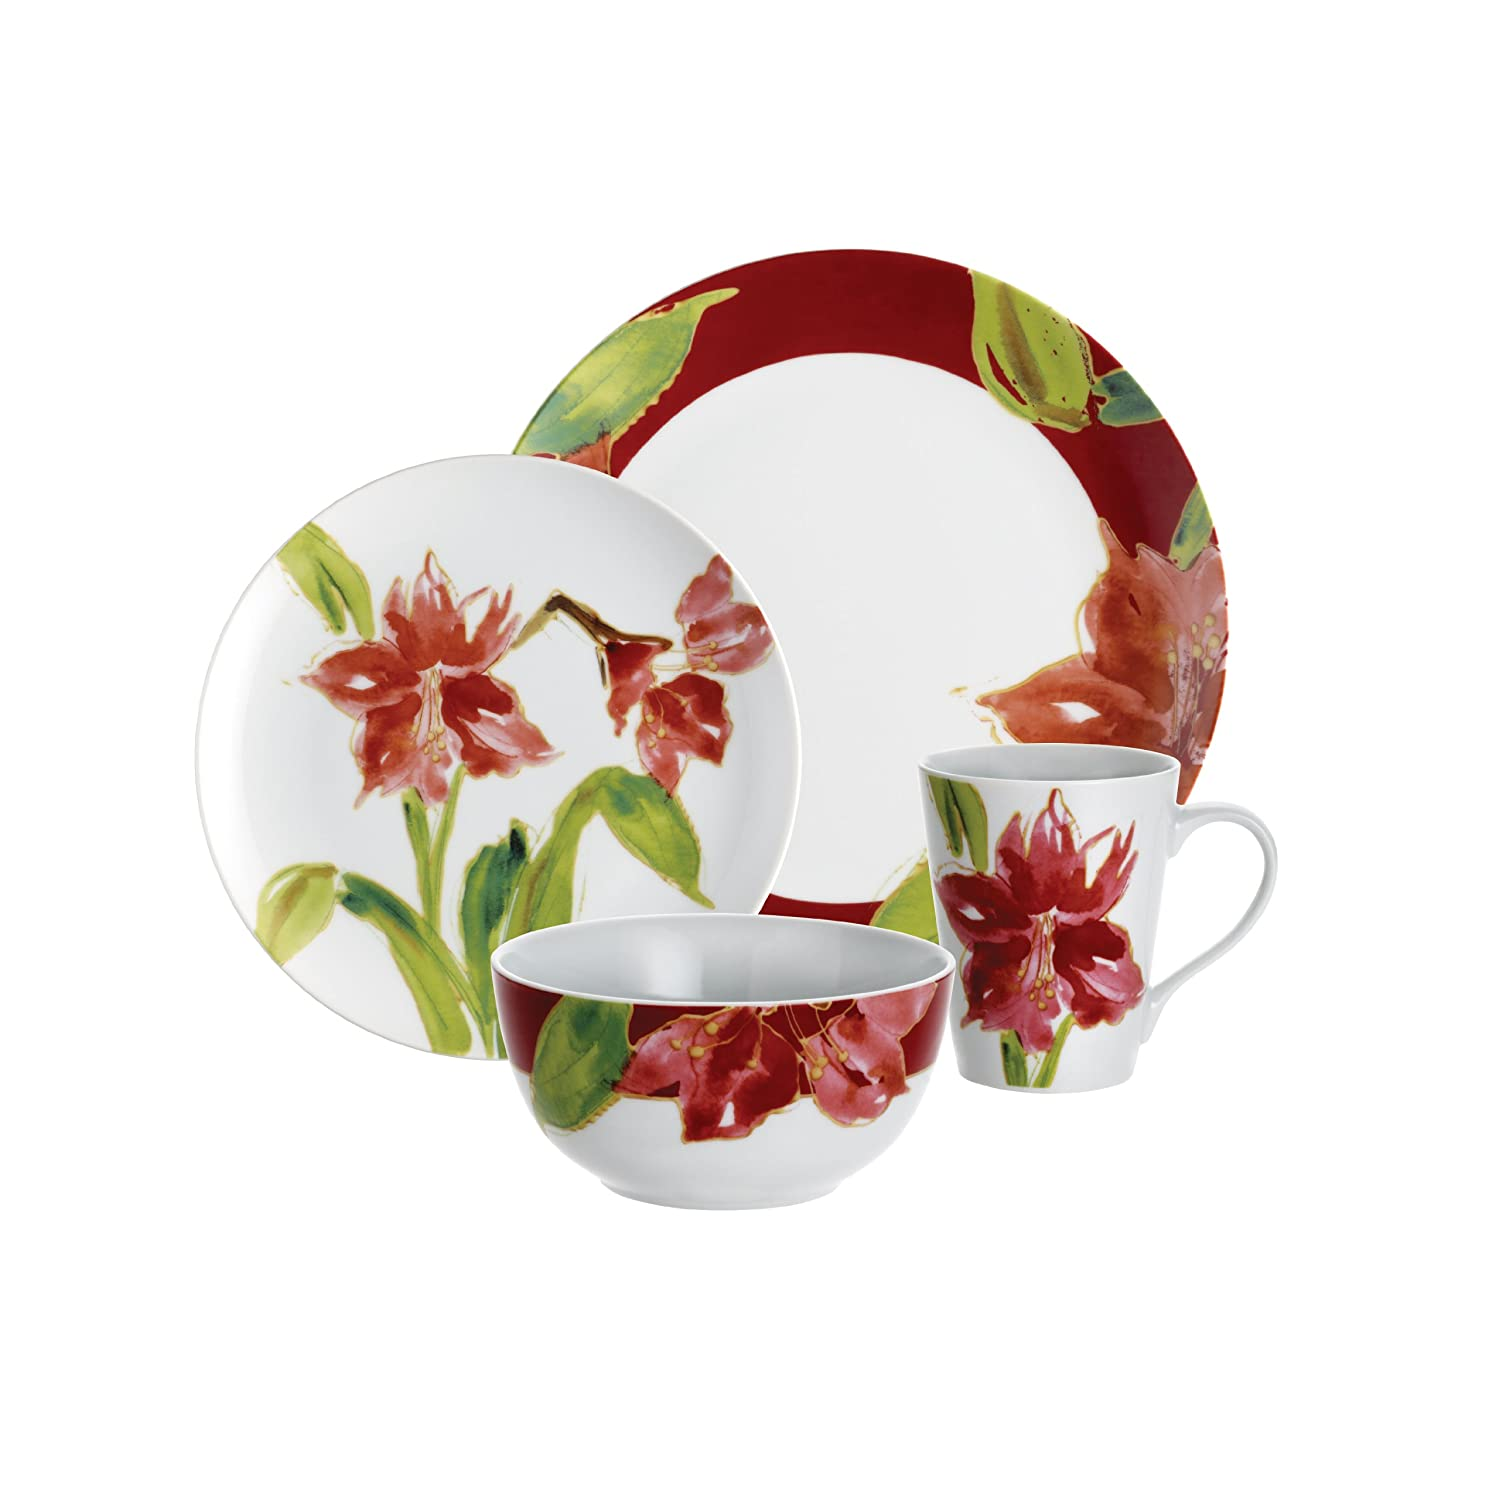 Amazon.com | Paula Deen Signature Dinnerware Amaryllis Holiday 16-Piece Dinnerware Set Christmas China Dinnerware Sets  sc 1 st  Amazon.com & Amazon.com | Paula Deen Signature Dinnerware Amaryllis Holiday 16 ...